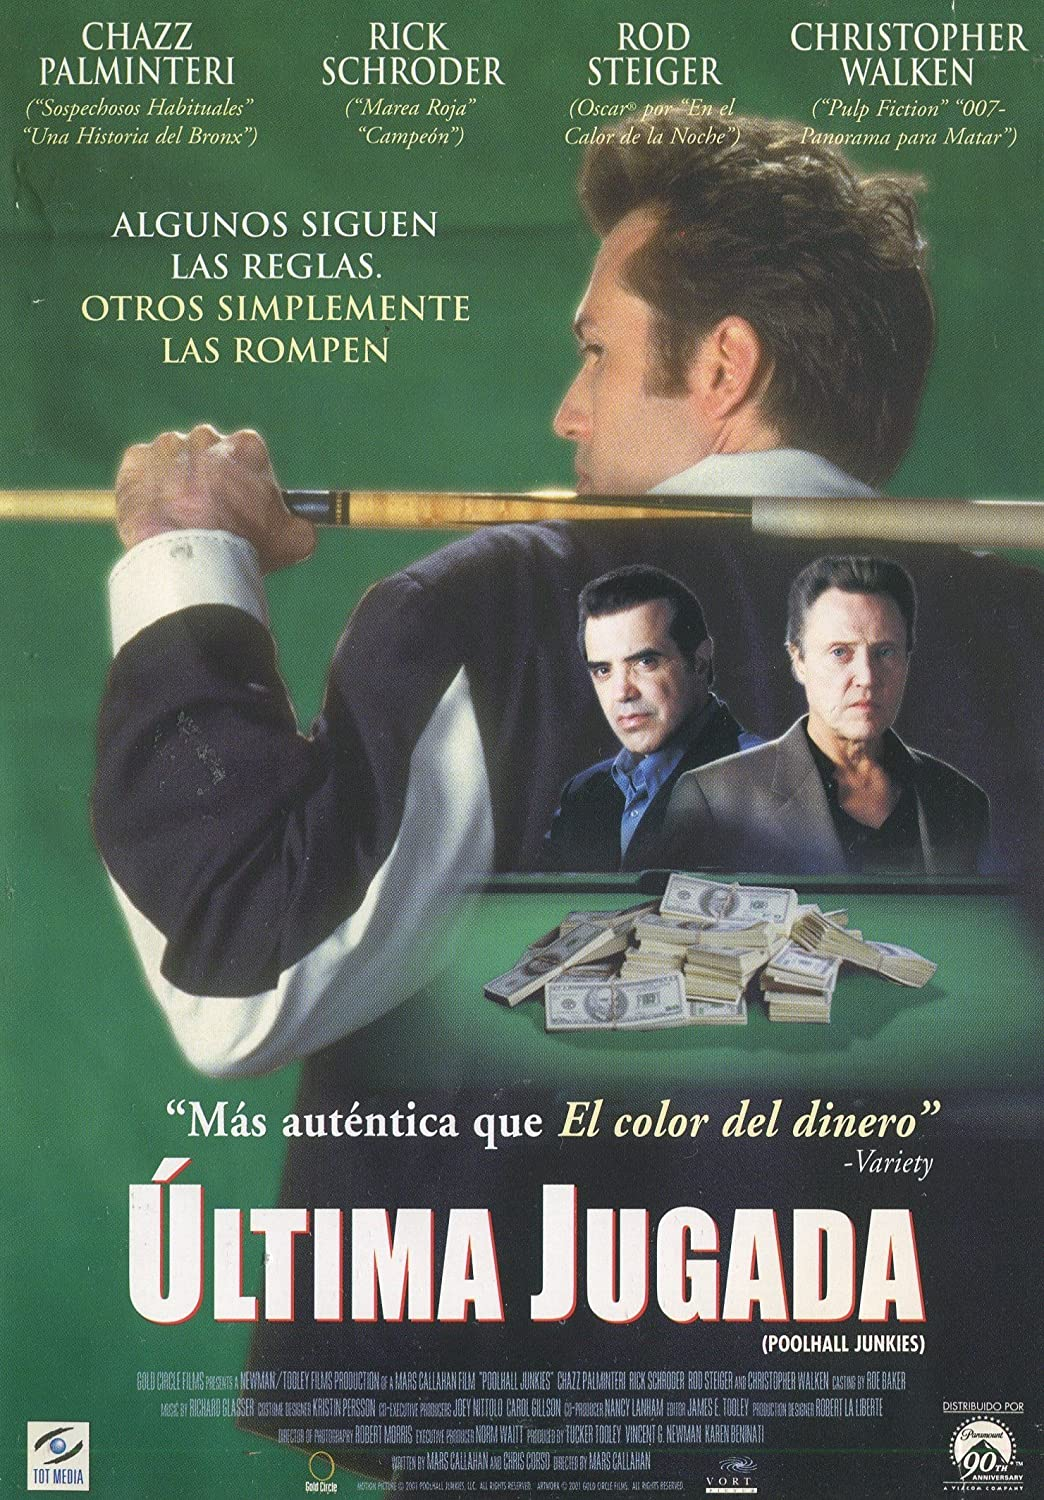 Ultima Jugada (Poolhall Junkies) [DVD]: Amazon.es: Chazz ...